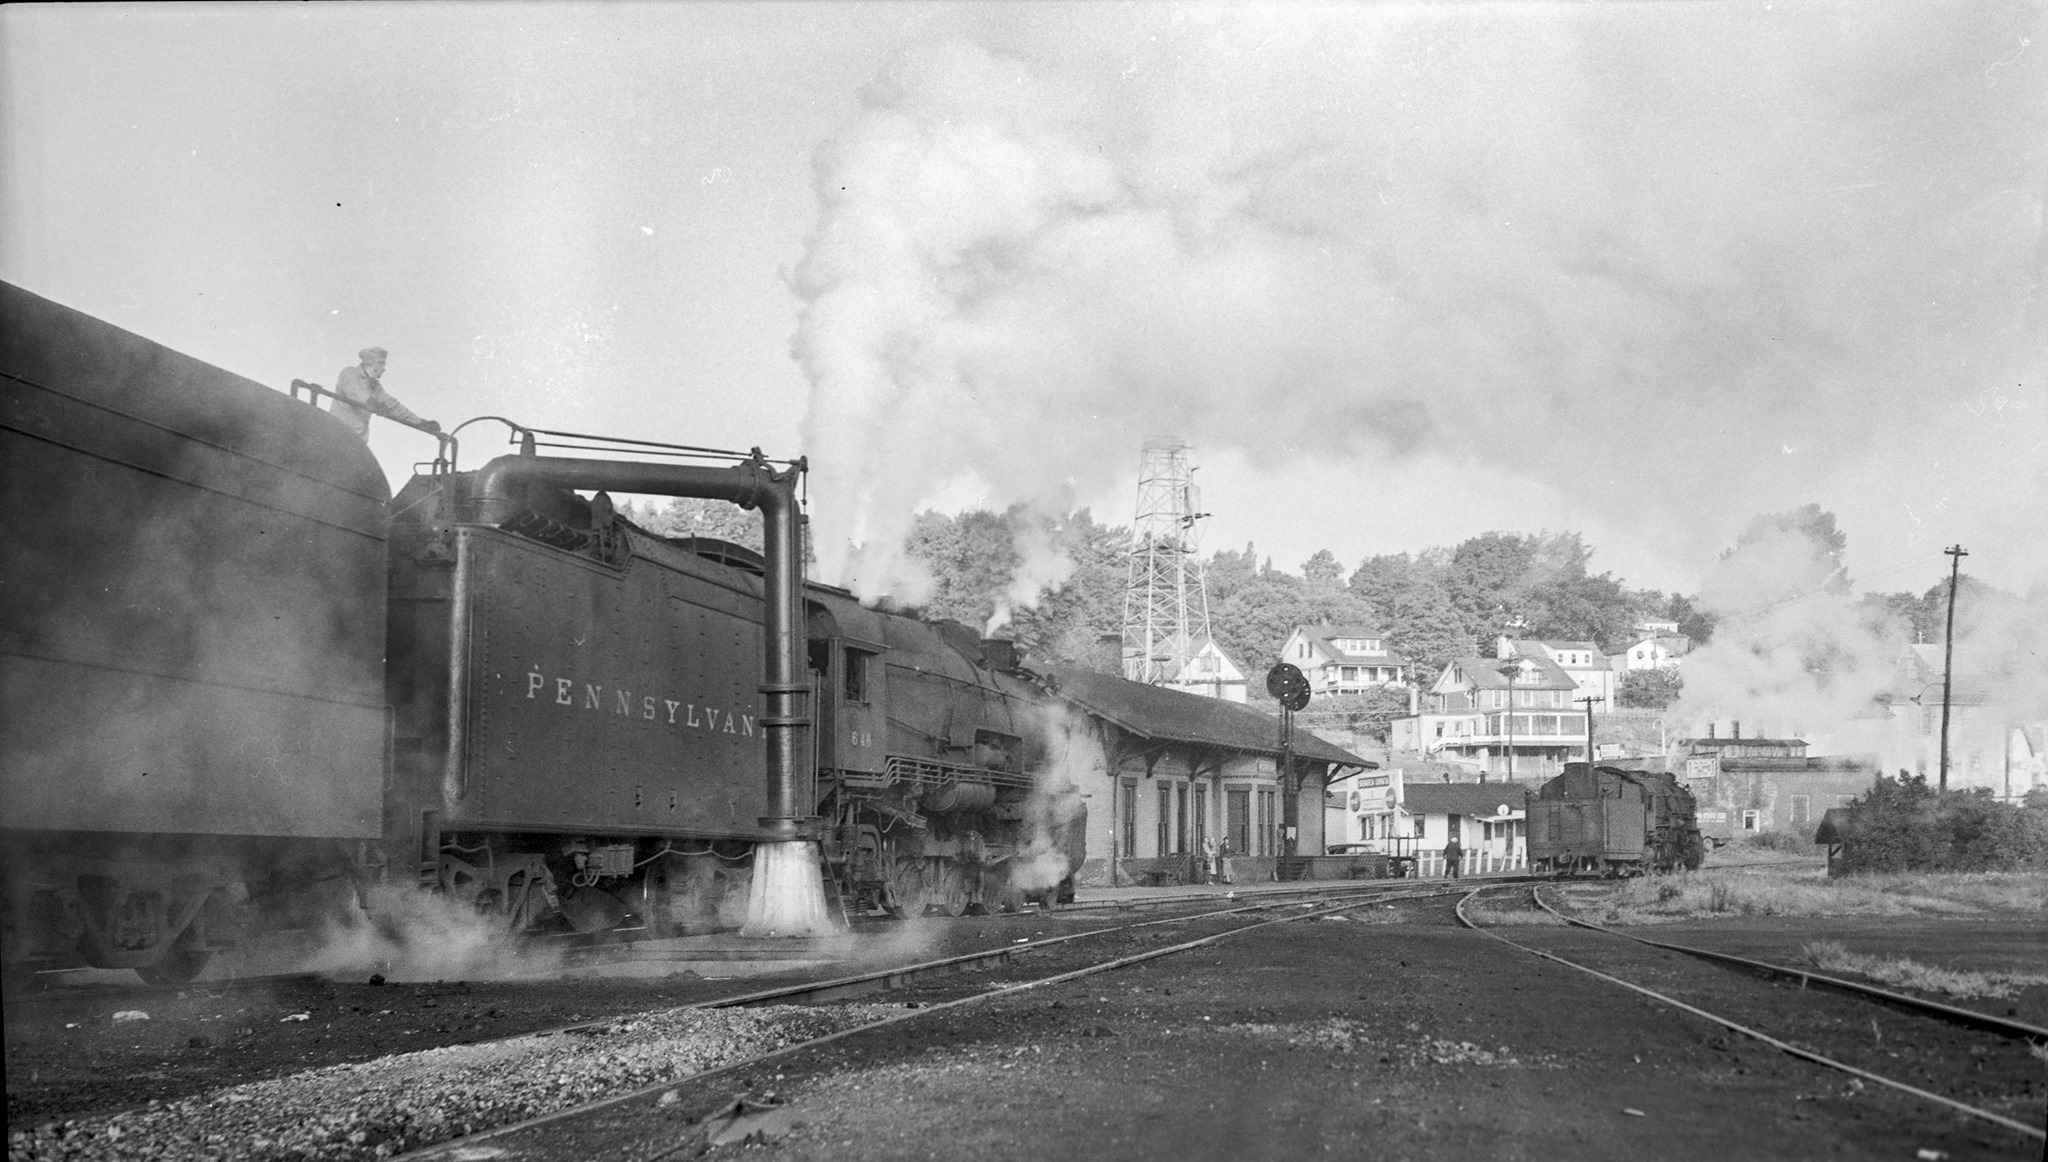 Pennsylvania Railroad 4 6 2 646 with a passenger train taking on water Watkins Glen NY in the 1940sjpg